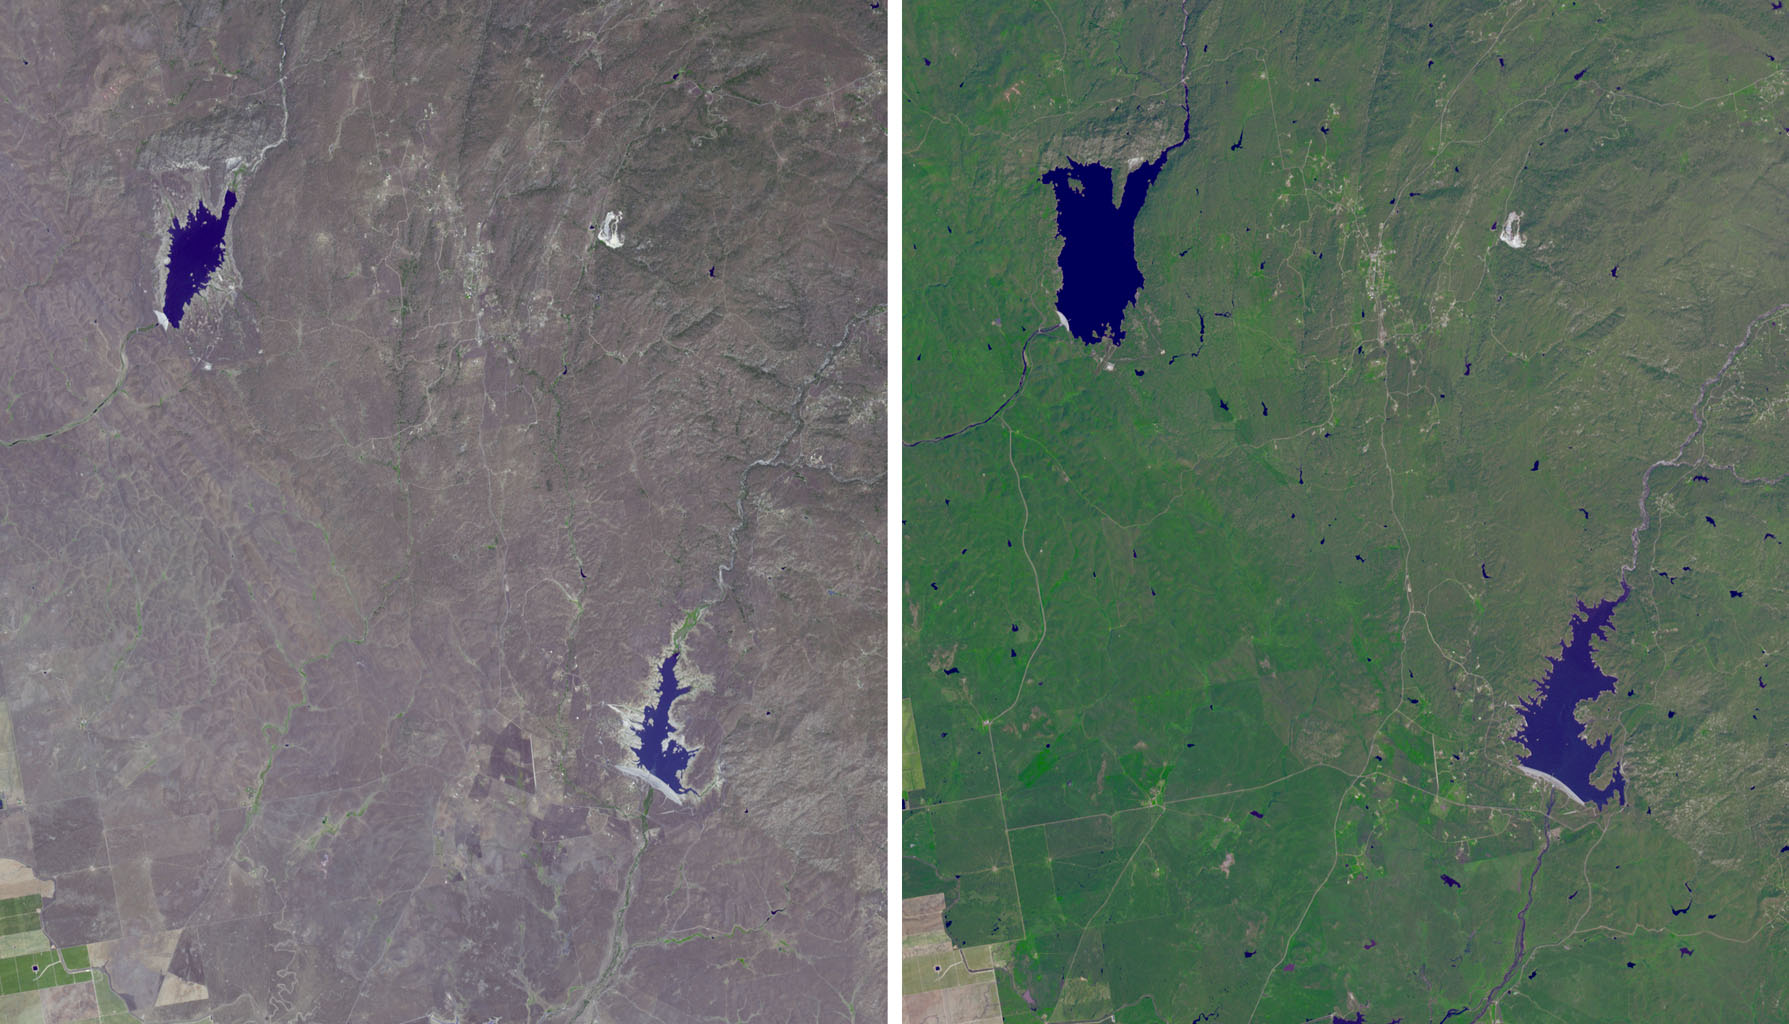 The effects of California's severe multiyear drought are seen in this pair of images acquired by NASA's Terra spacecraft of the area northeast of Madera, in the Sierra Nevada Moutains foothills between Yosemite National Park and the San Joaquin Valley